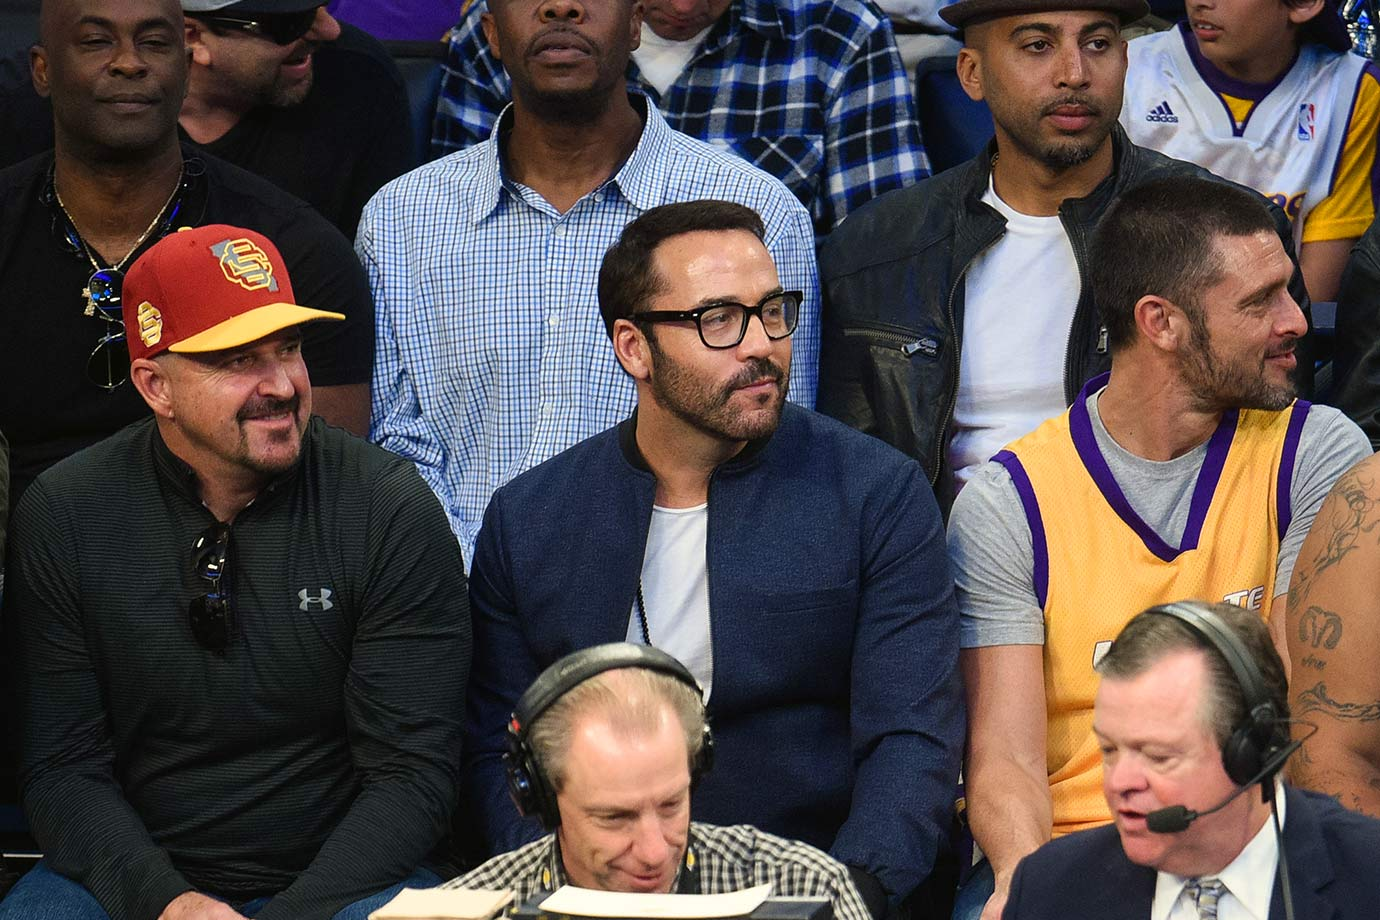 March 6, 2016 — Lakers vs. Warriors at Staples Center in Los Angeles